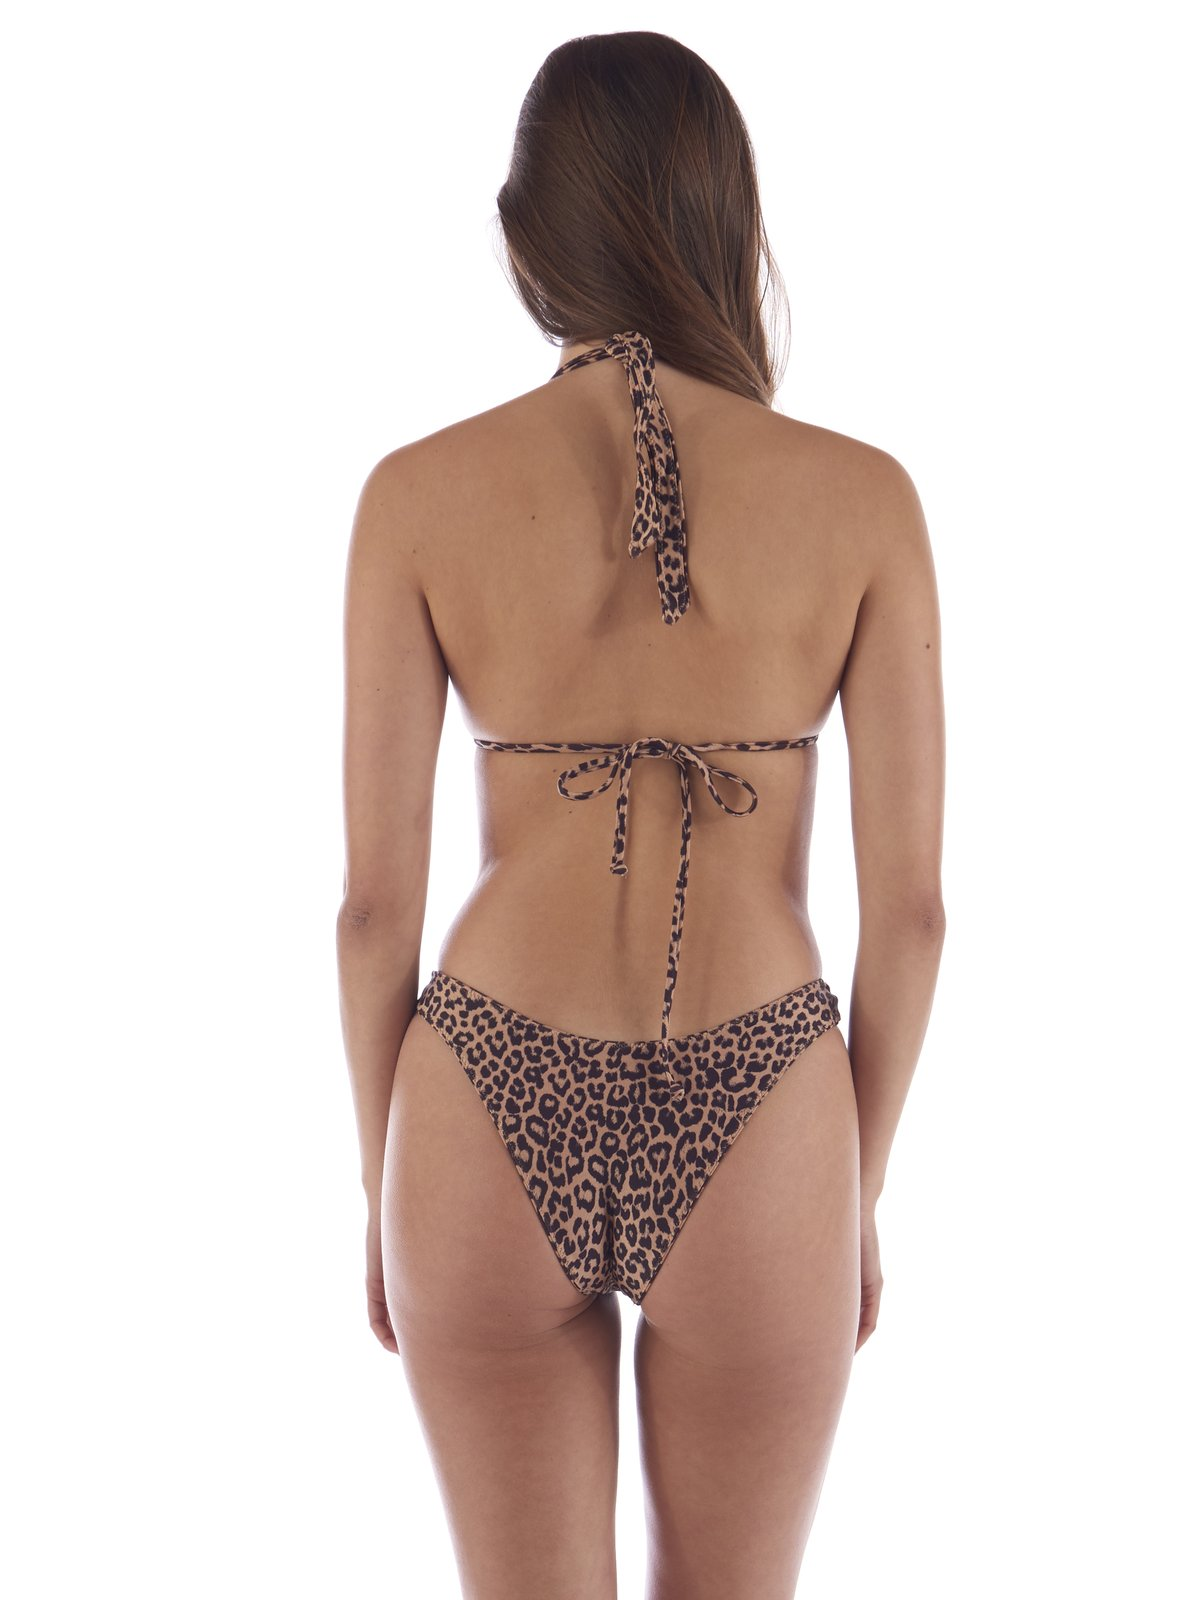 Ama Lama Bottom (Leopard)